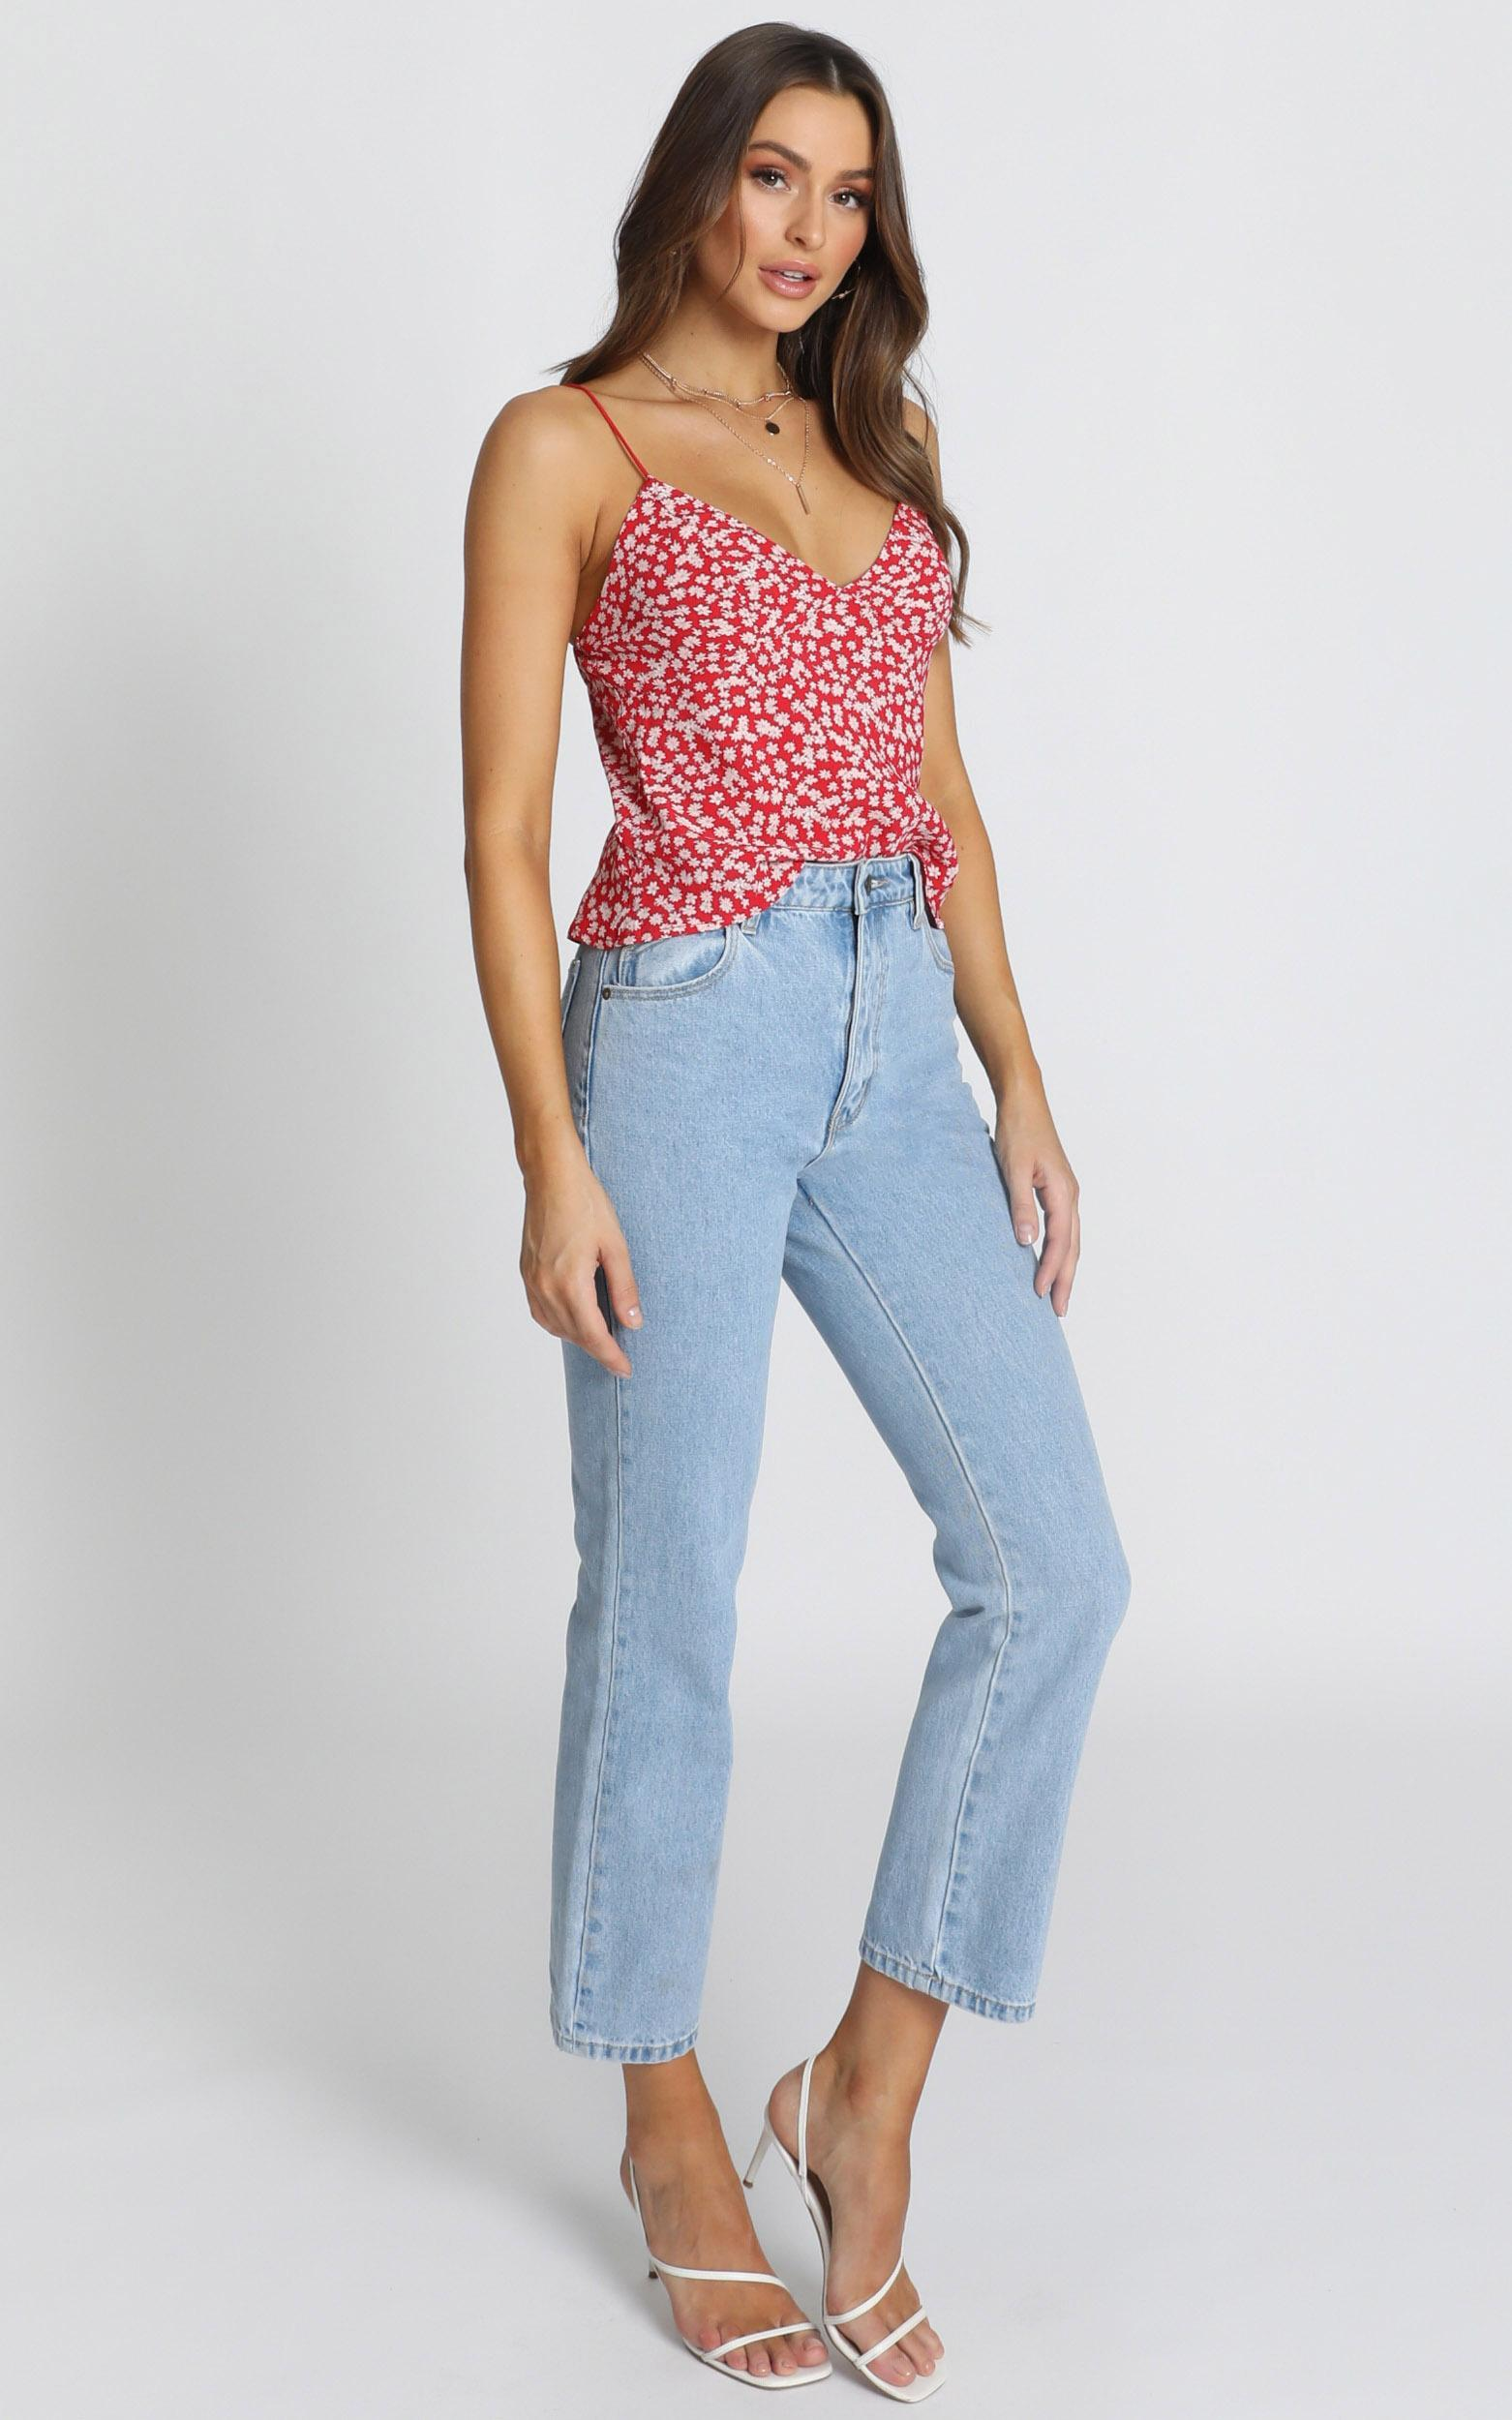 Evie Floral Top in red floral - M/L, Red, hi-res image number null